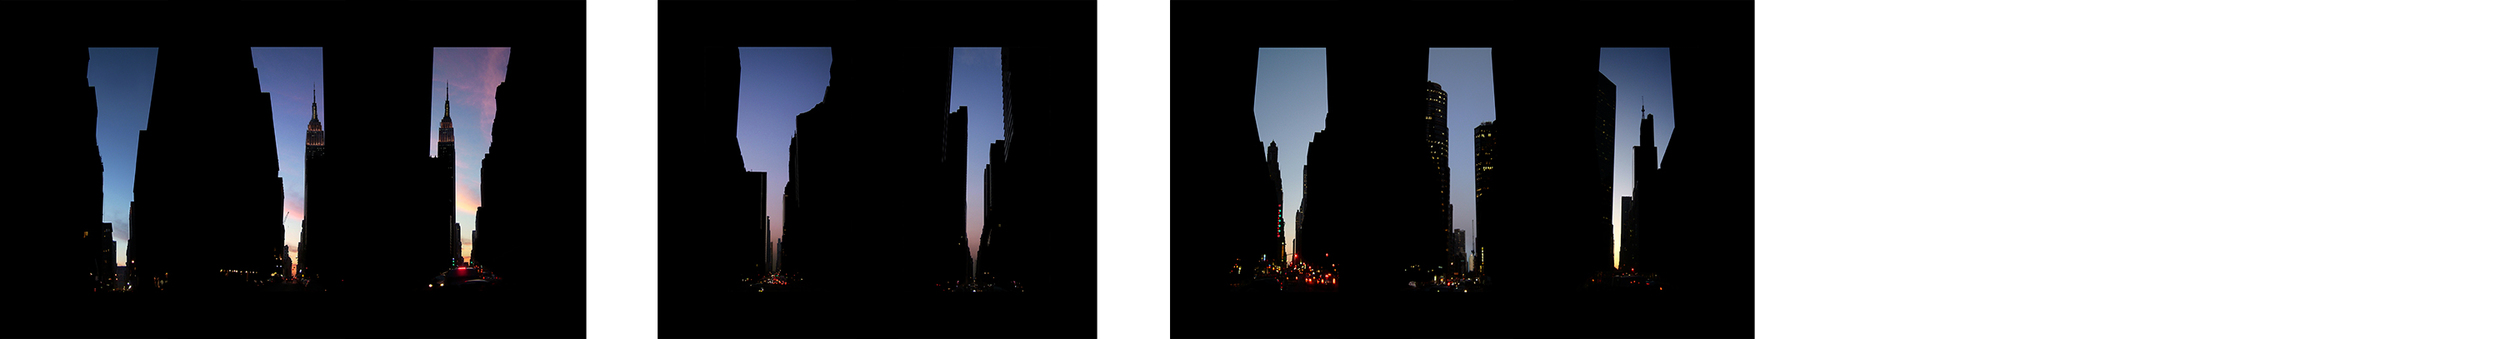 """32nd, 33rd, 34th; 57th, 58th; 2nd Ave, 3rd Ave and 53rdStreet   , 8c-prints 7 x 5"""" each, 2004"""